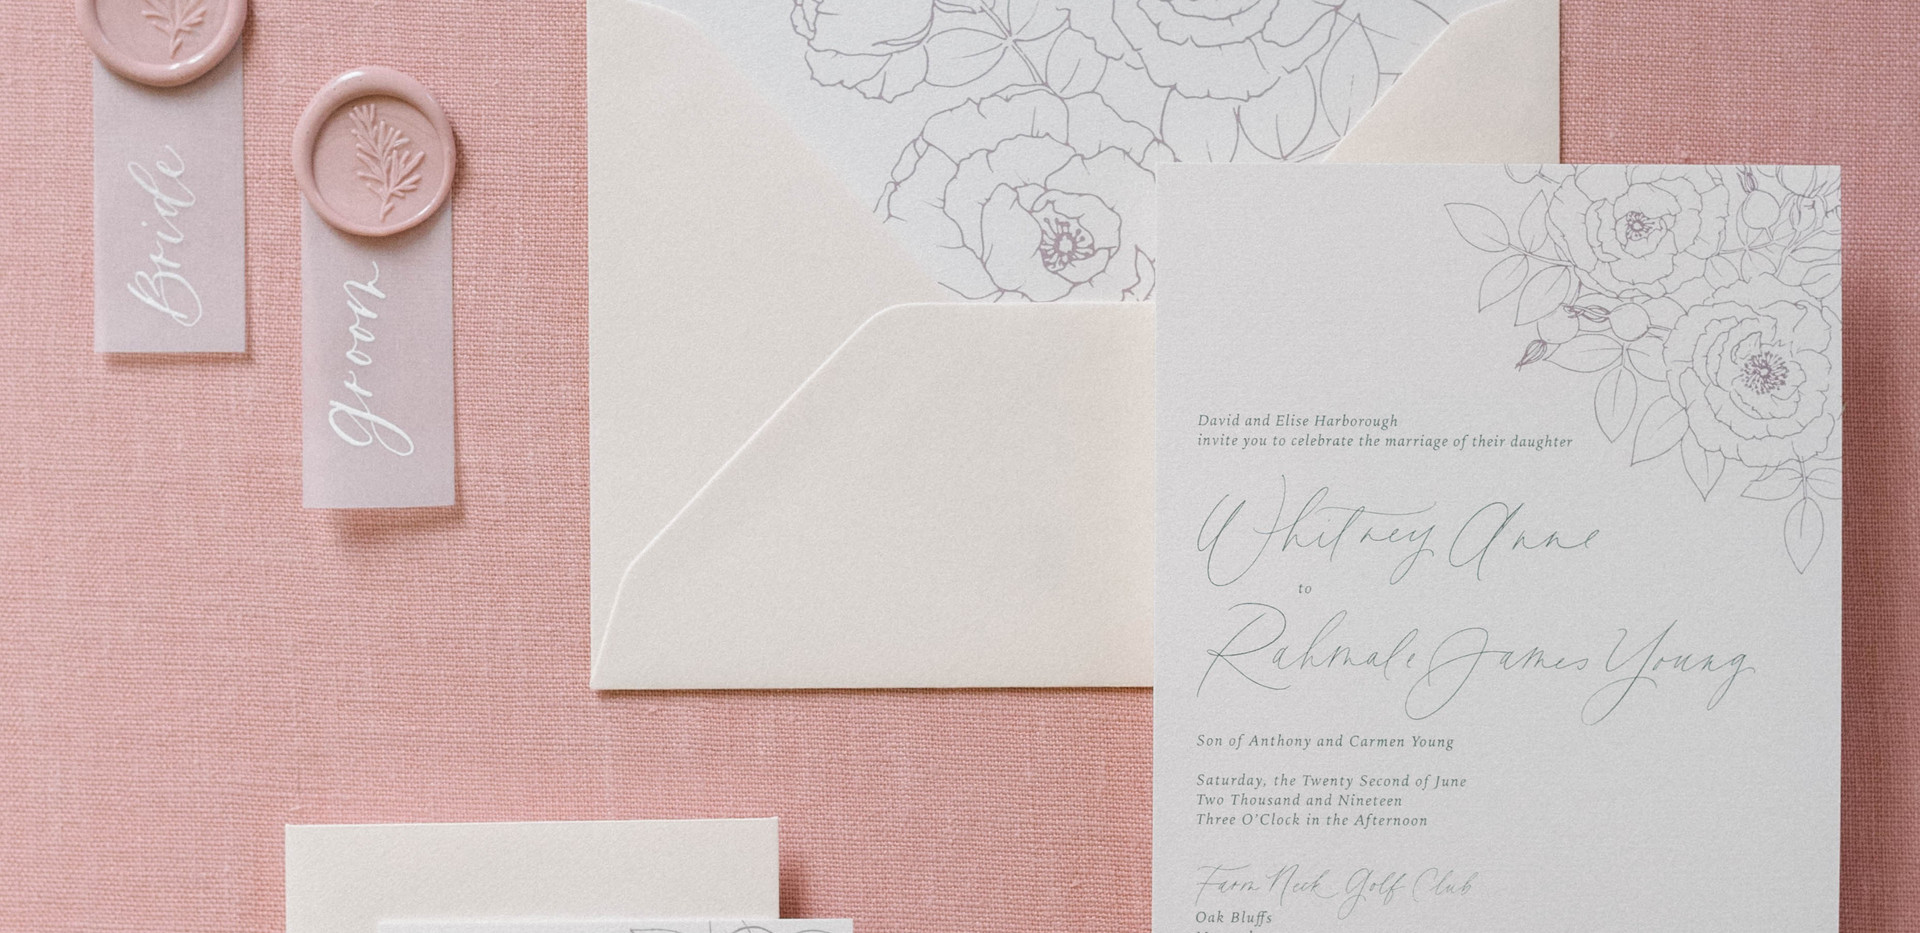 Martha's Vineyard wedding invitations